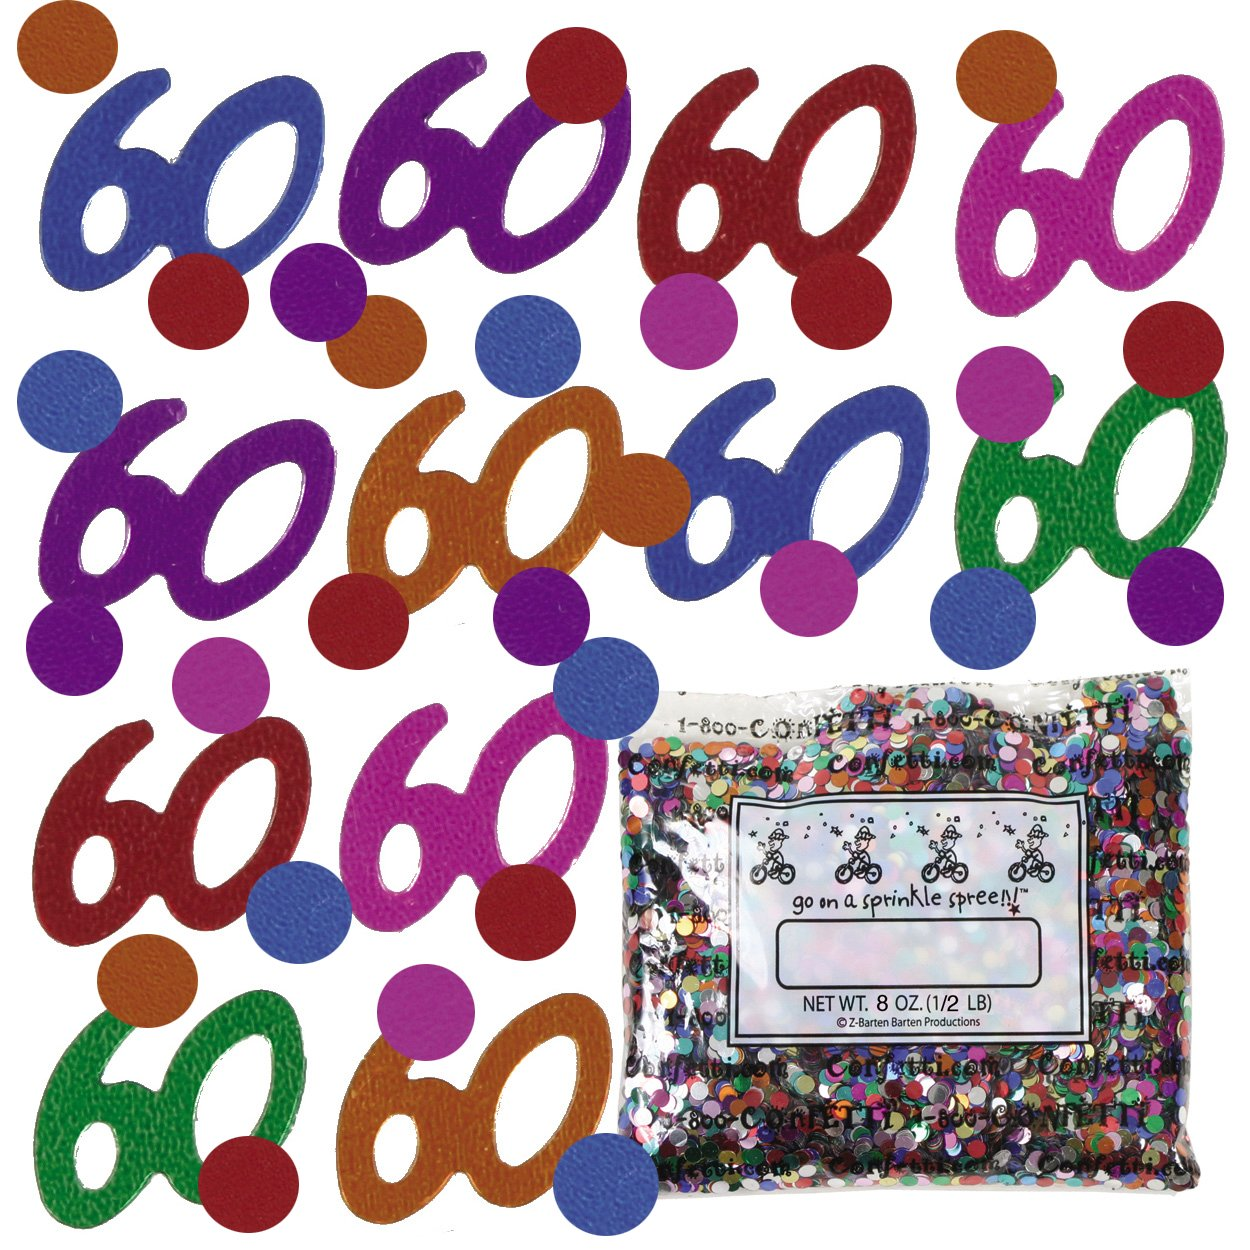 Confetti Mix - 60s & Circles Multicolors - One Pound - Free Priority Mail- (9005)